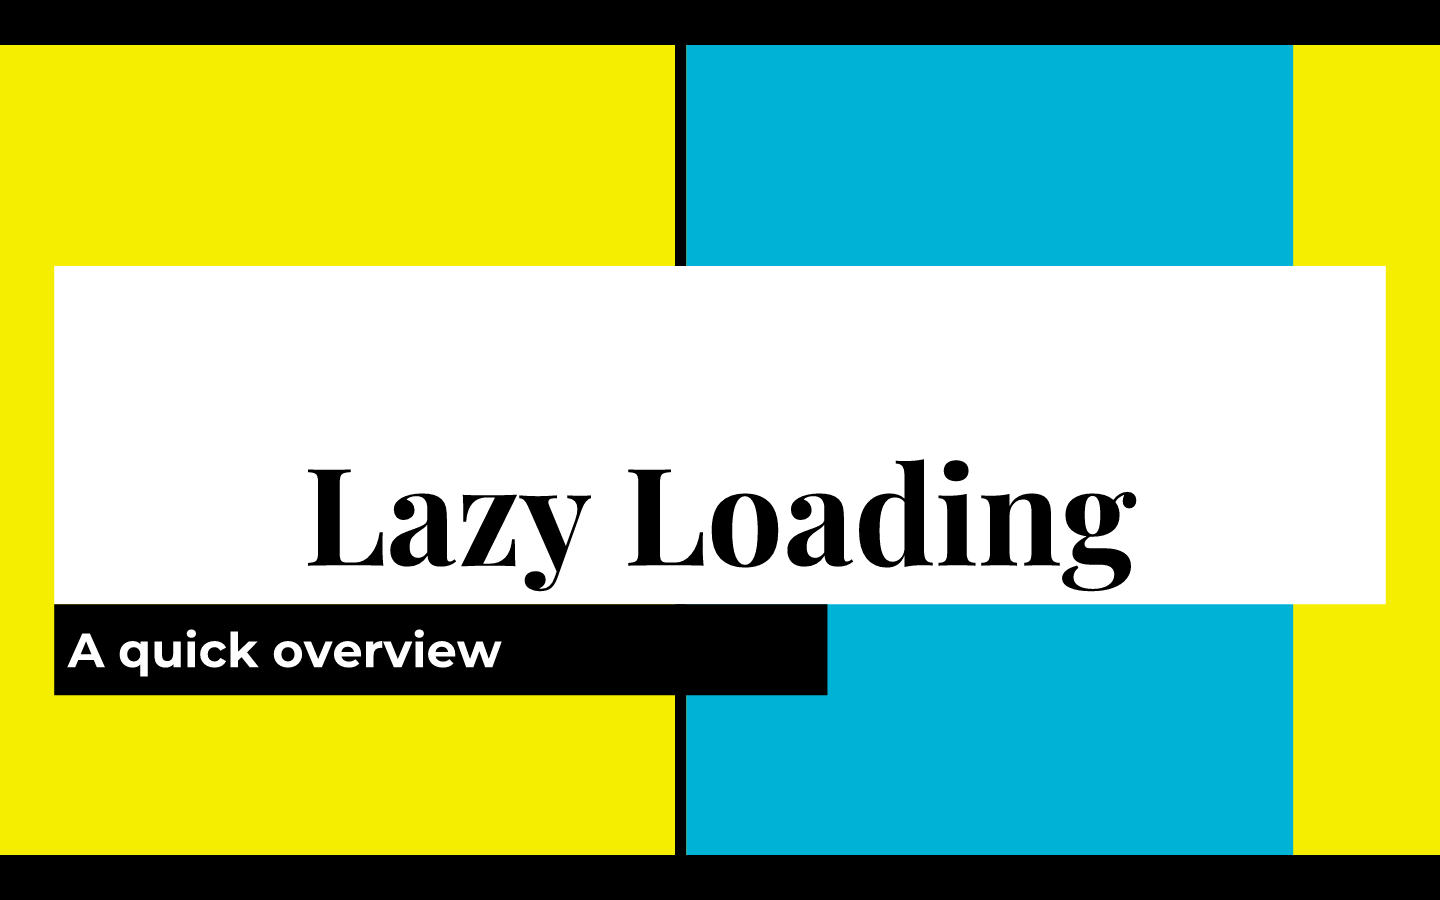 lazy loading slides